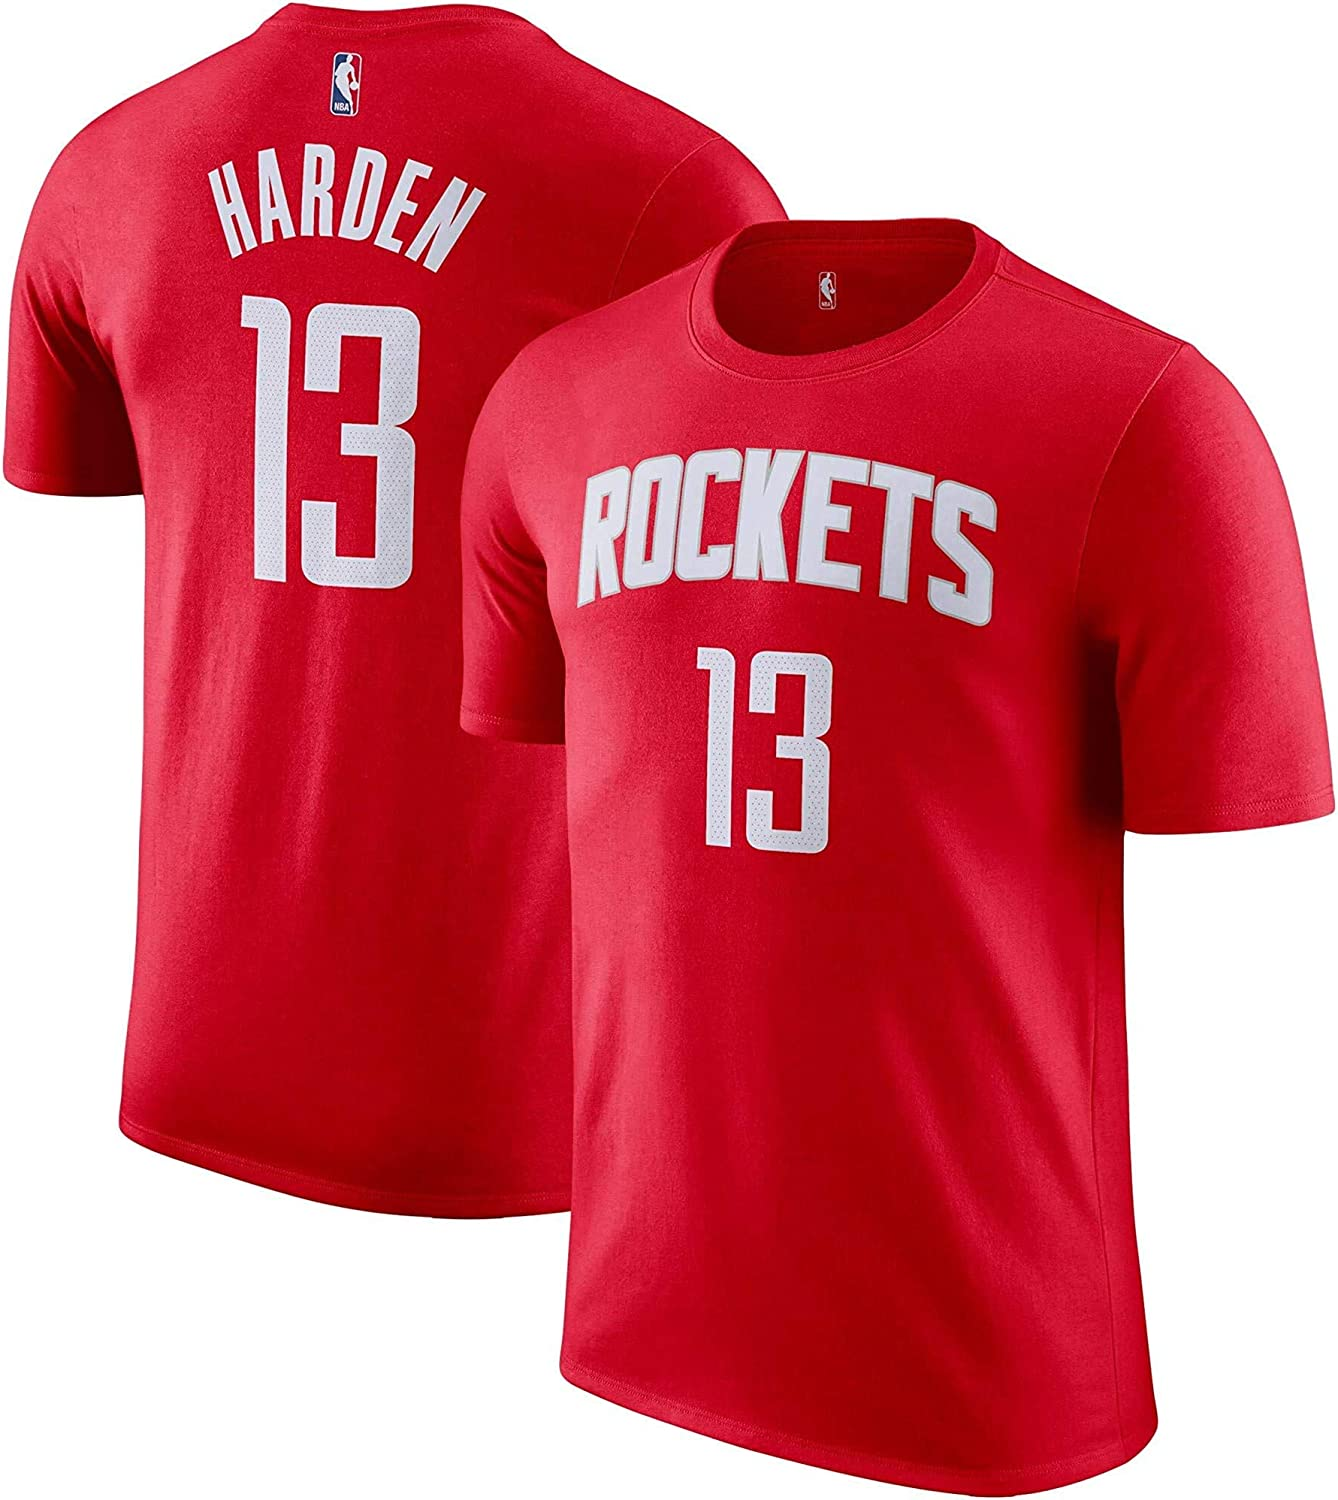 OuterStuff James Harden Houston Rockets NBA Boys Youth 8-20 Red Name /& Number Player T-Shirt